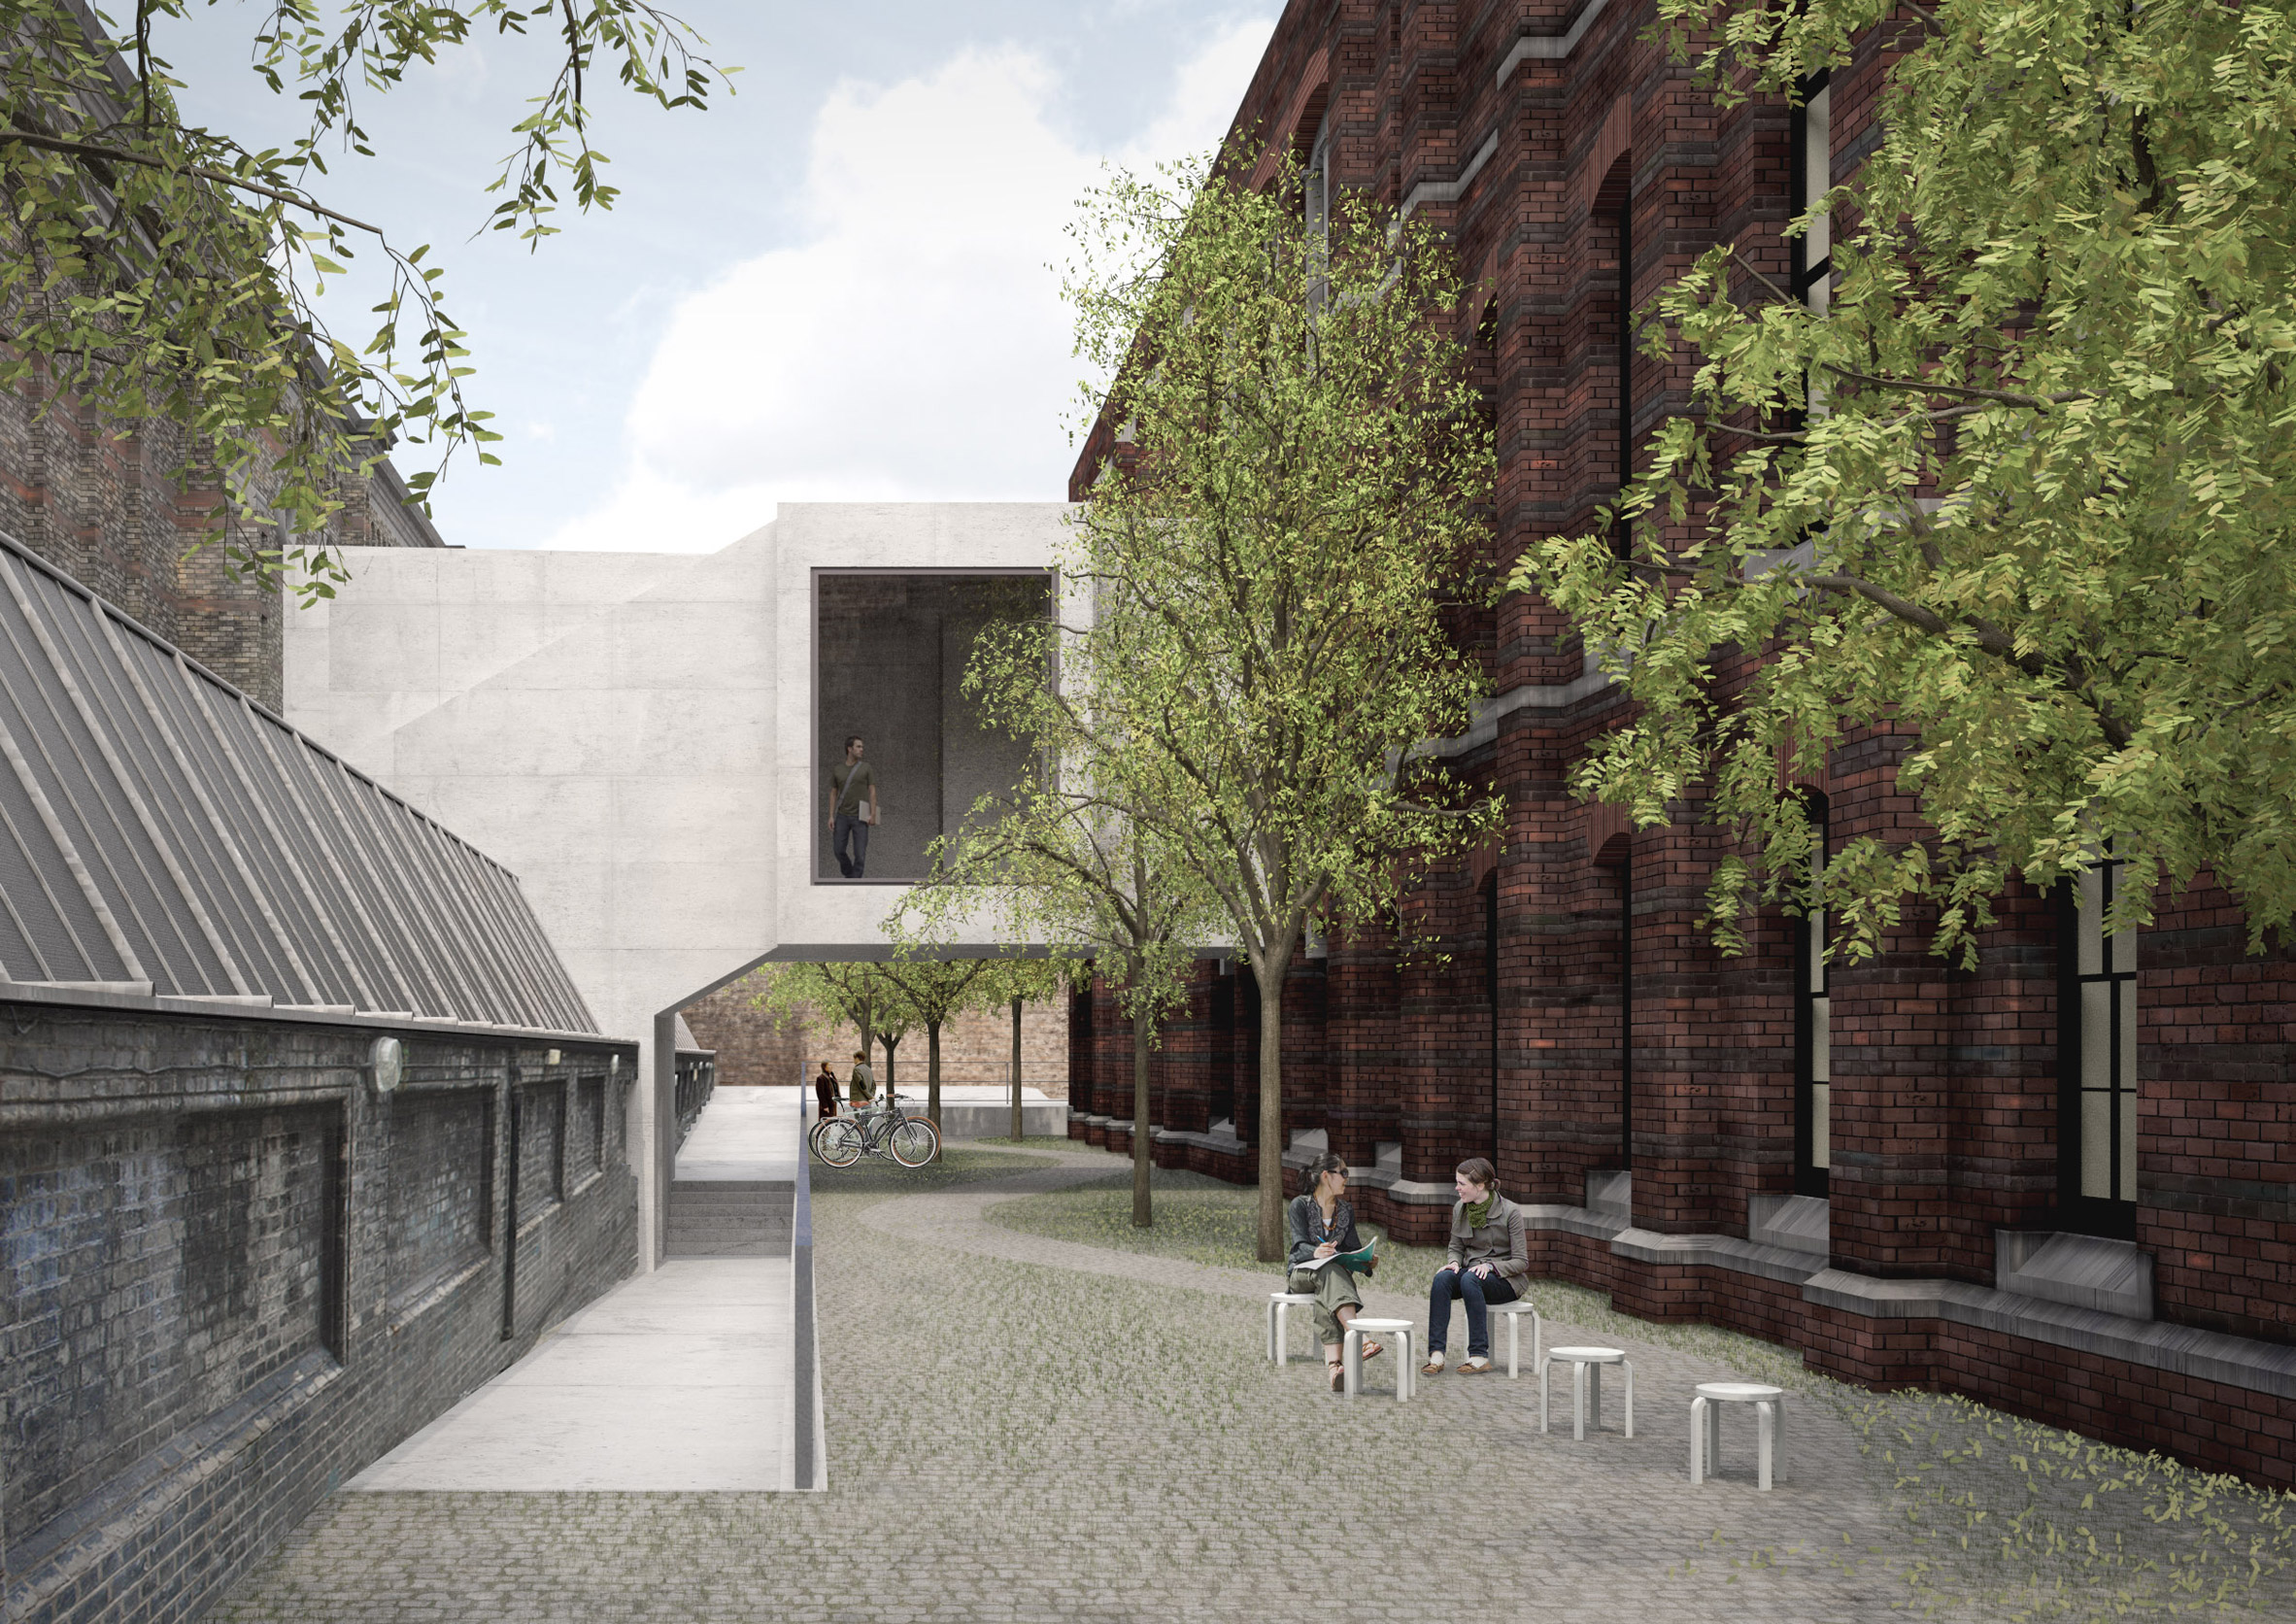 Royal Academy of Arts announces new architecture gallery as part of Chipperfield renovation